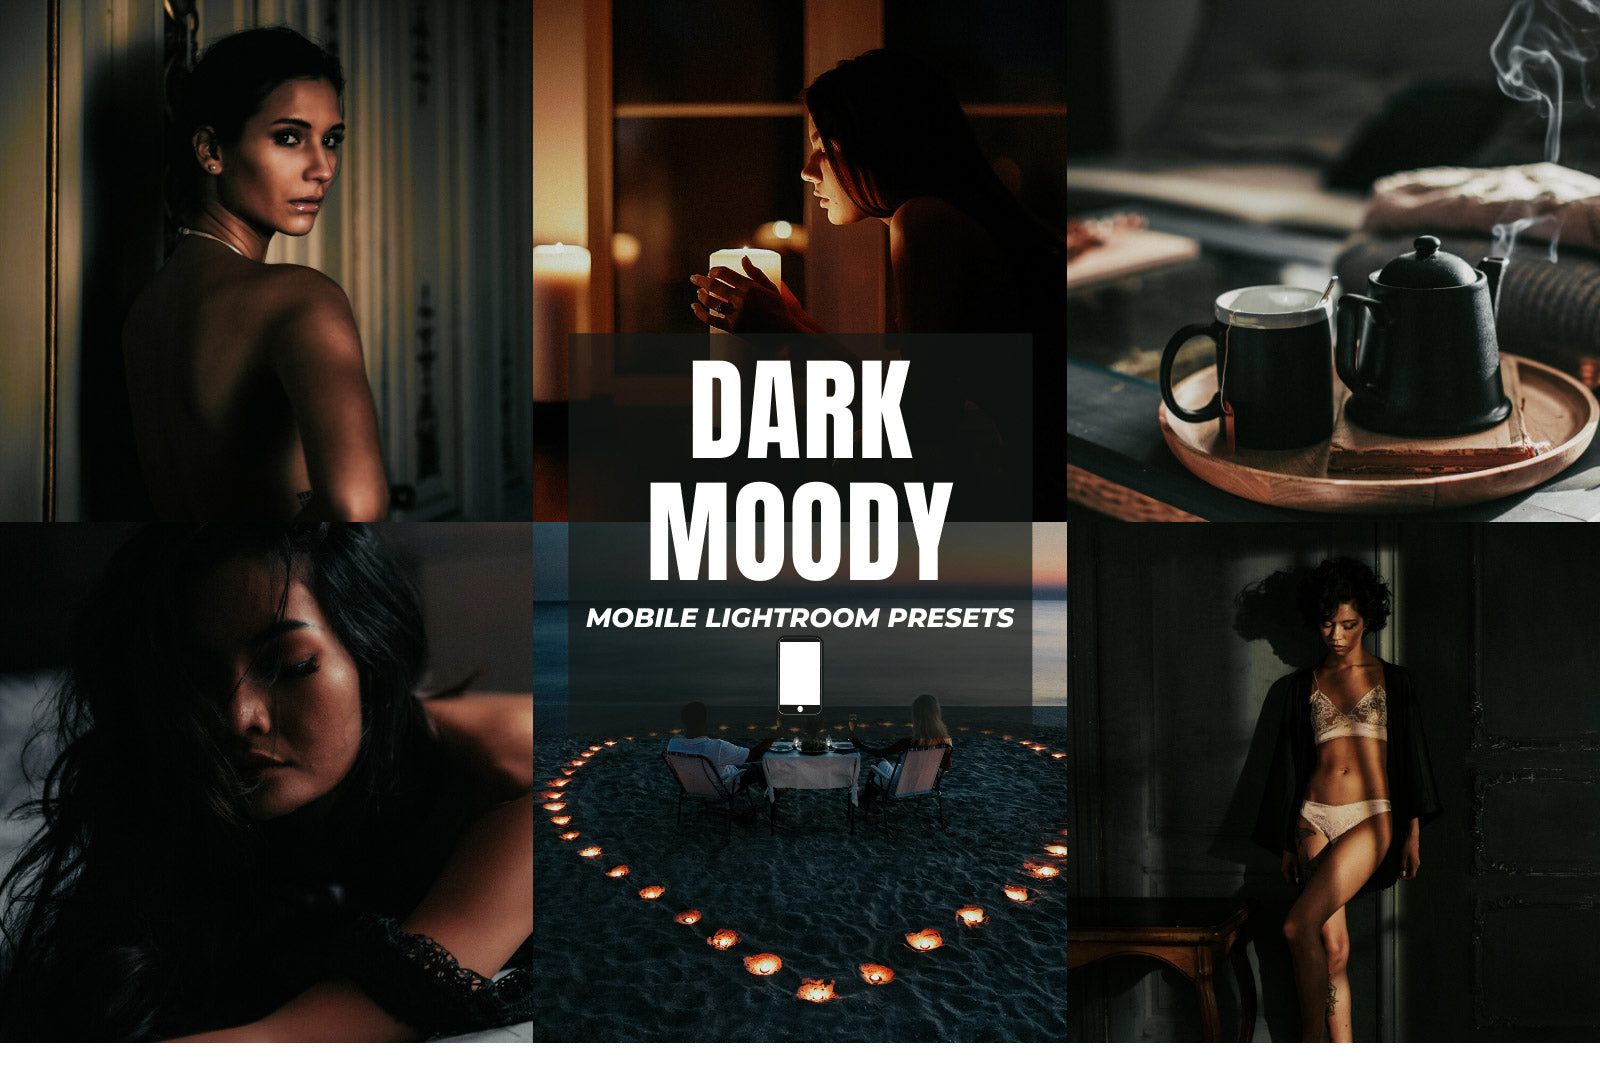 DARK MOODY MOBILE LIGHTROOM PRESETS